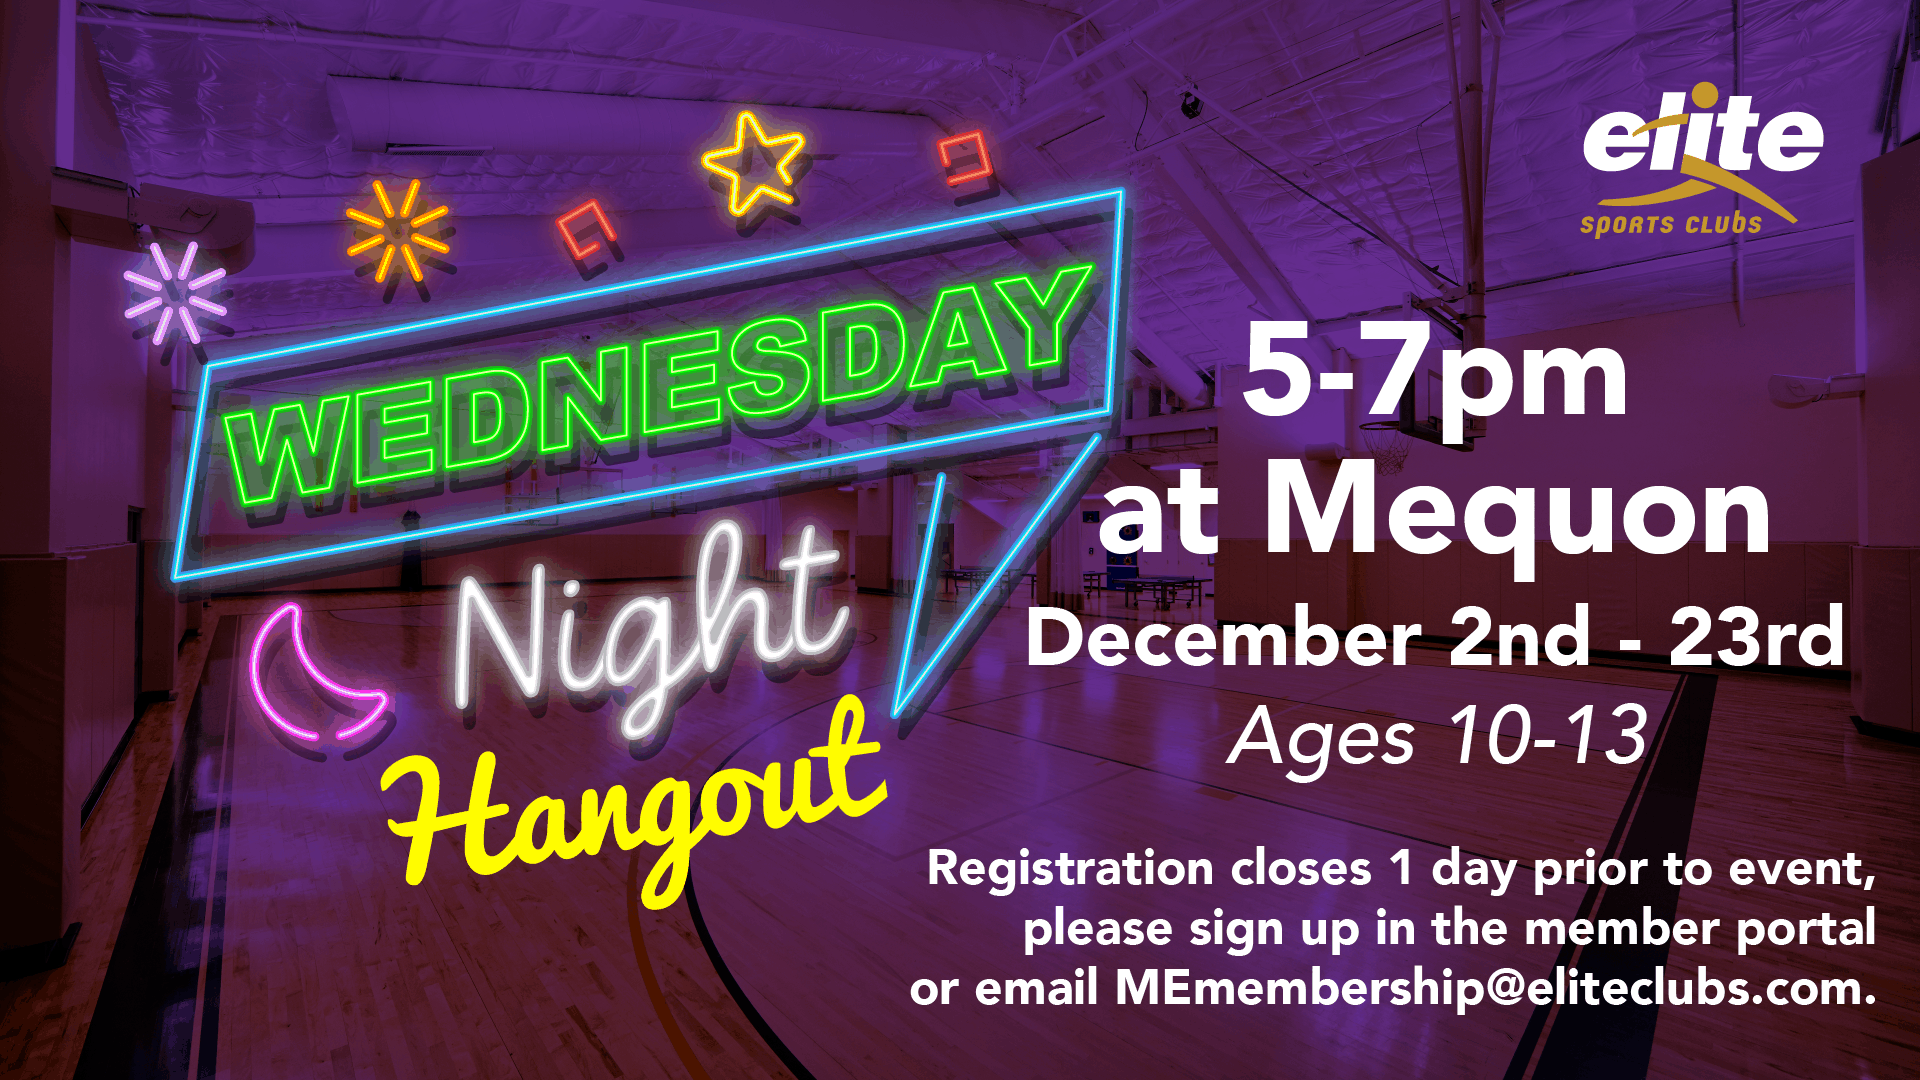 Wednesday Night Hangout - Elite Mequon - December 2020